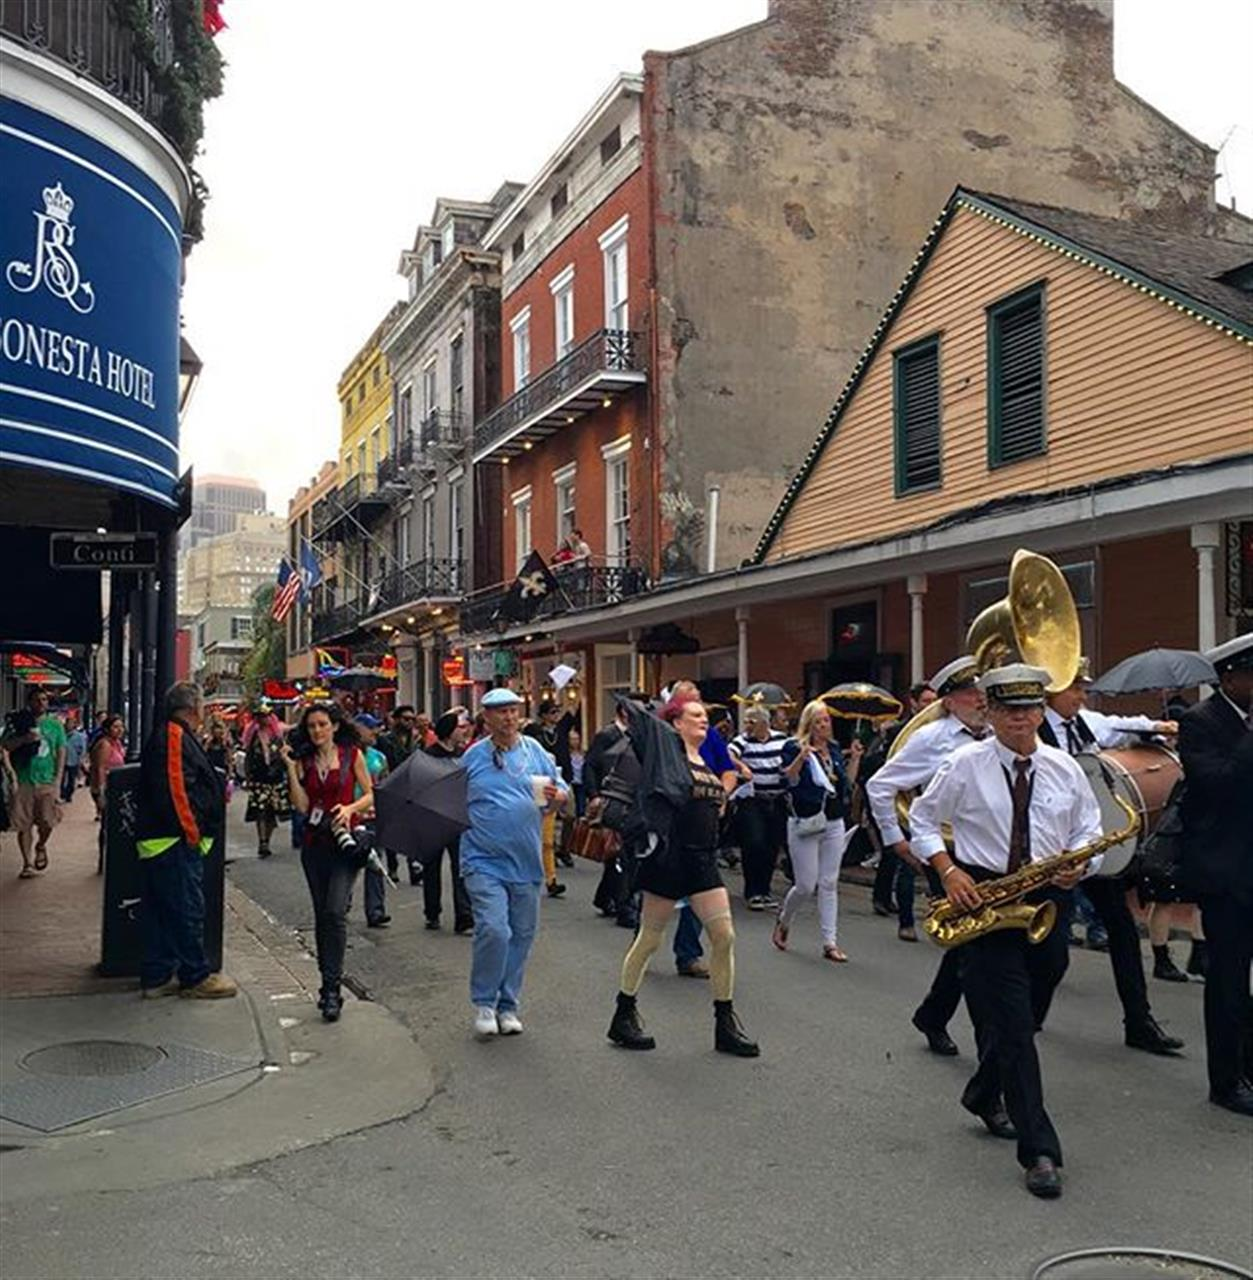 A New Orleans style second line is a celebration of life #thisisnola